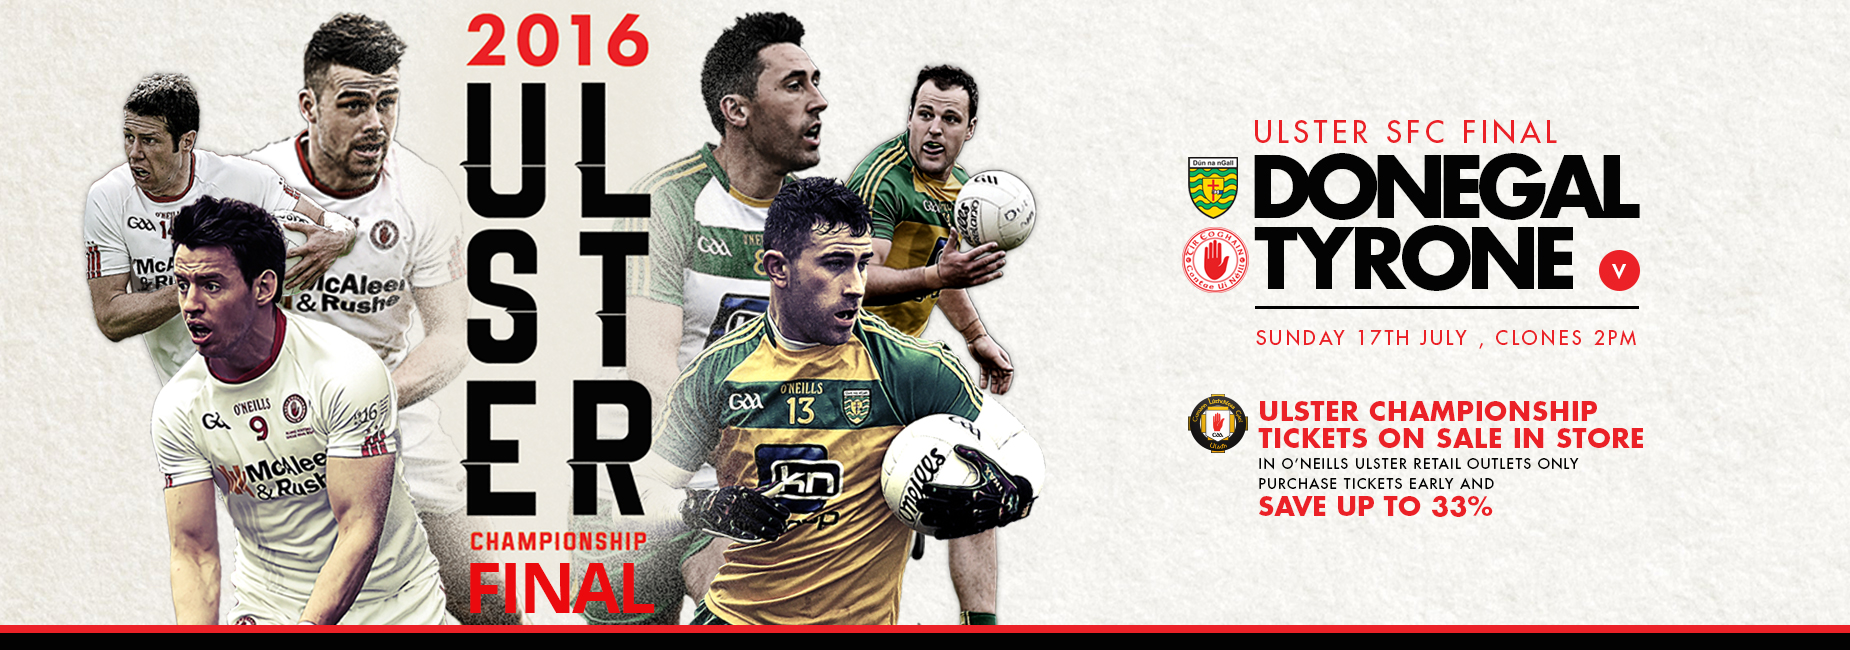 An Attack of the Clones: 9 Things About the Ulster Final